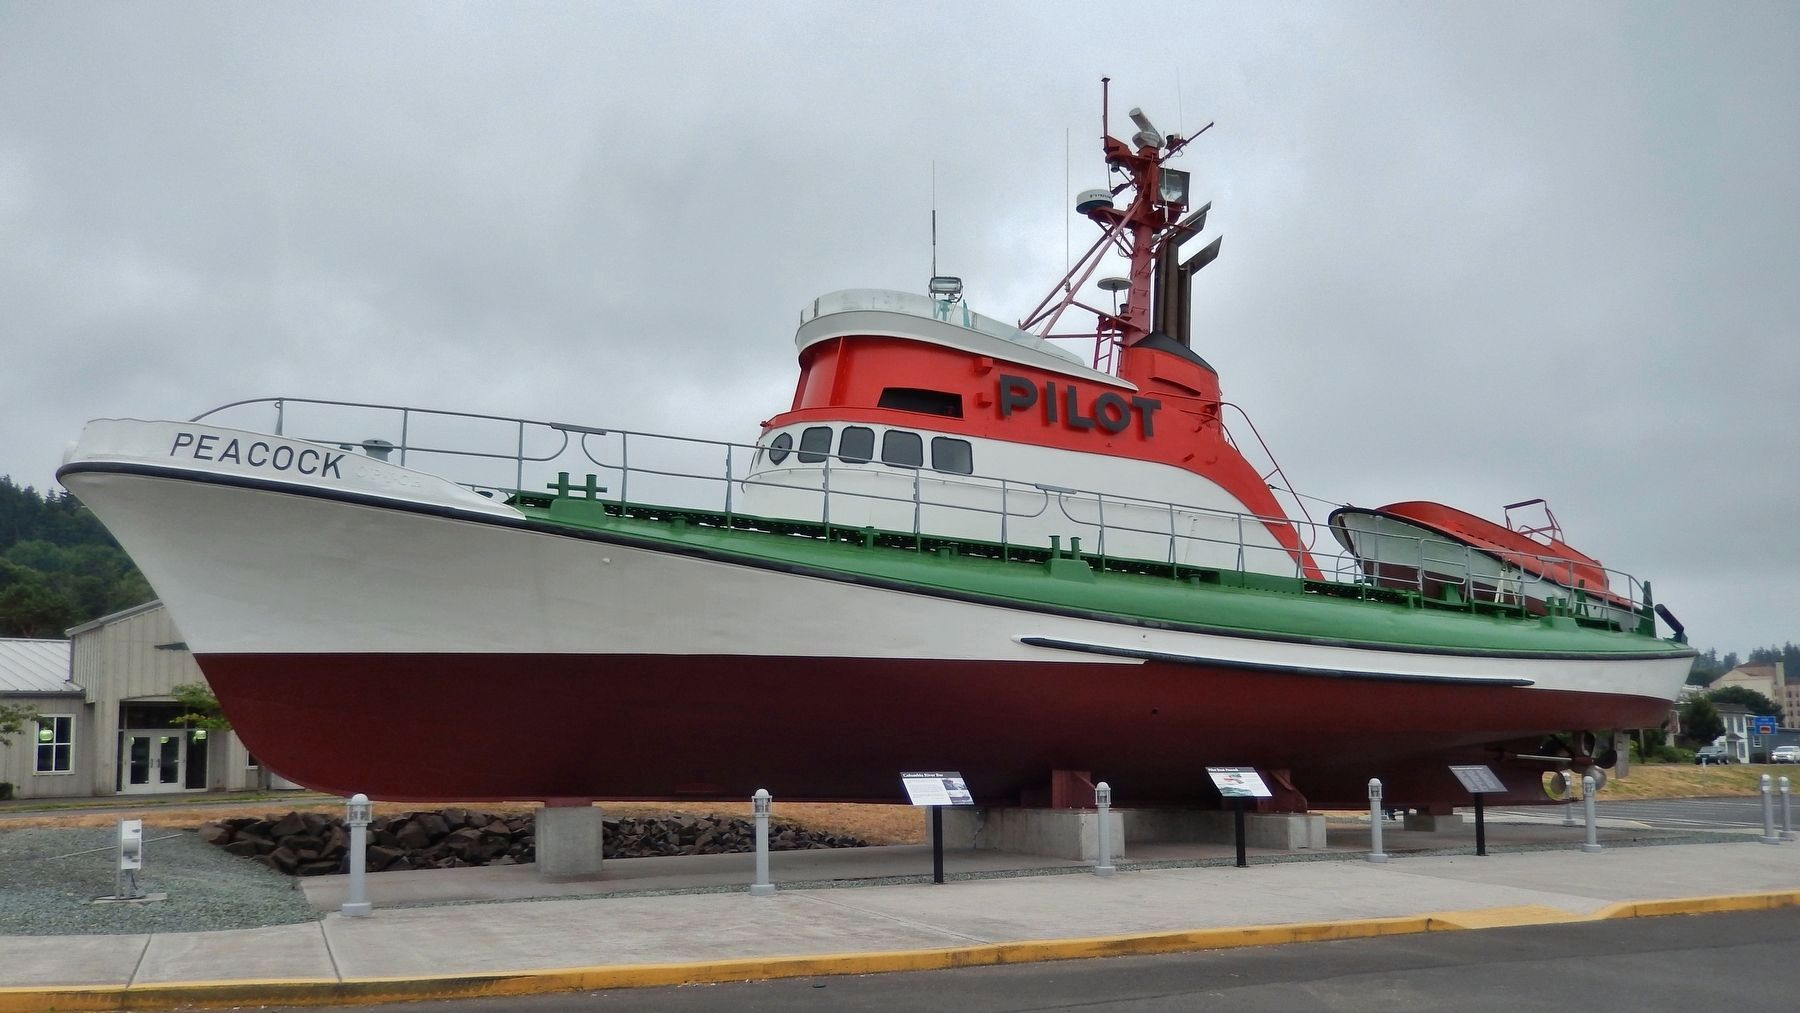 Pilot Boat <i>Peacock</i> (<i>wide view</i>) image. Click for full size.